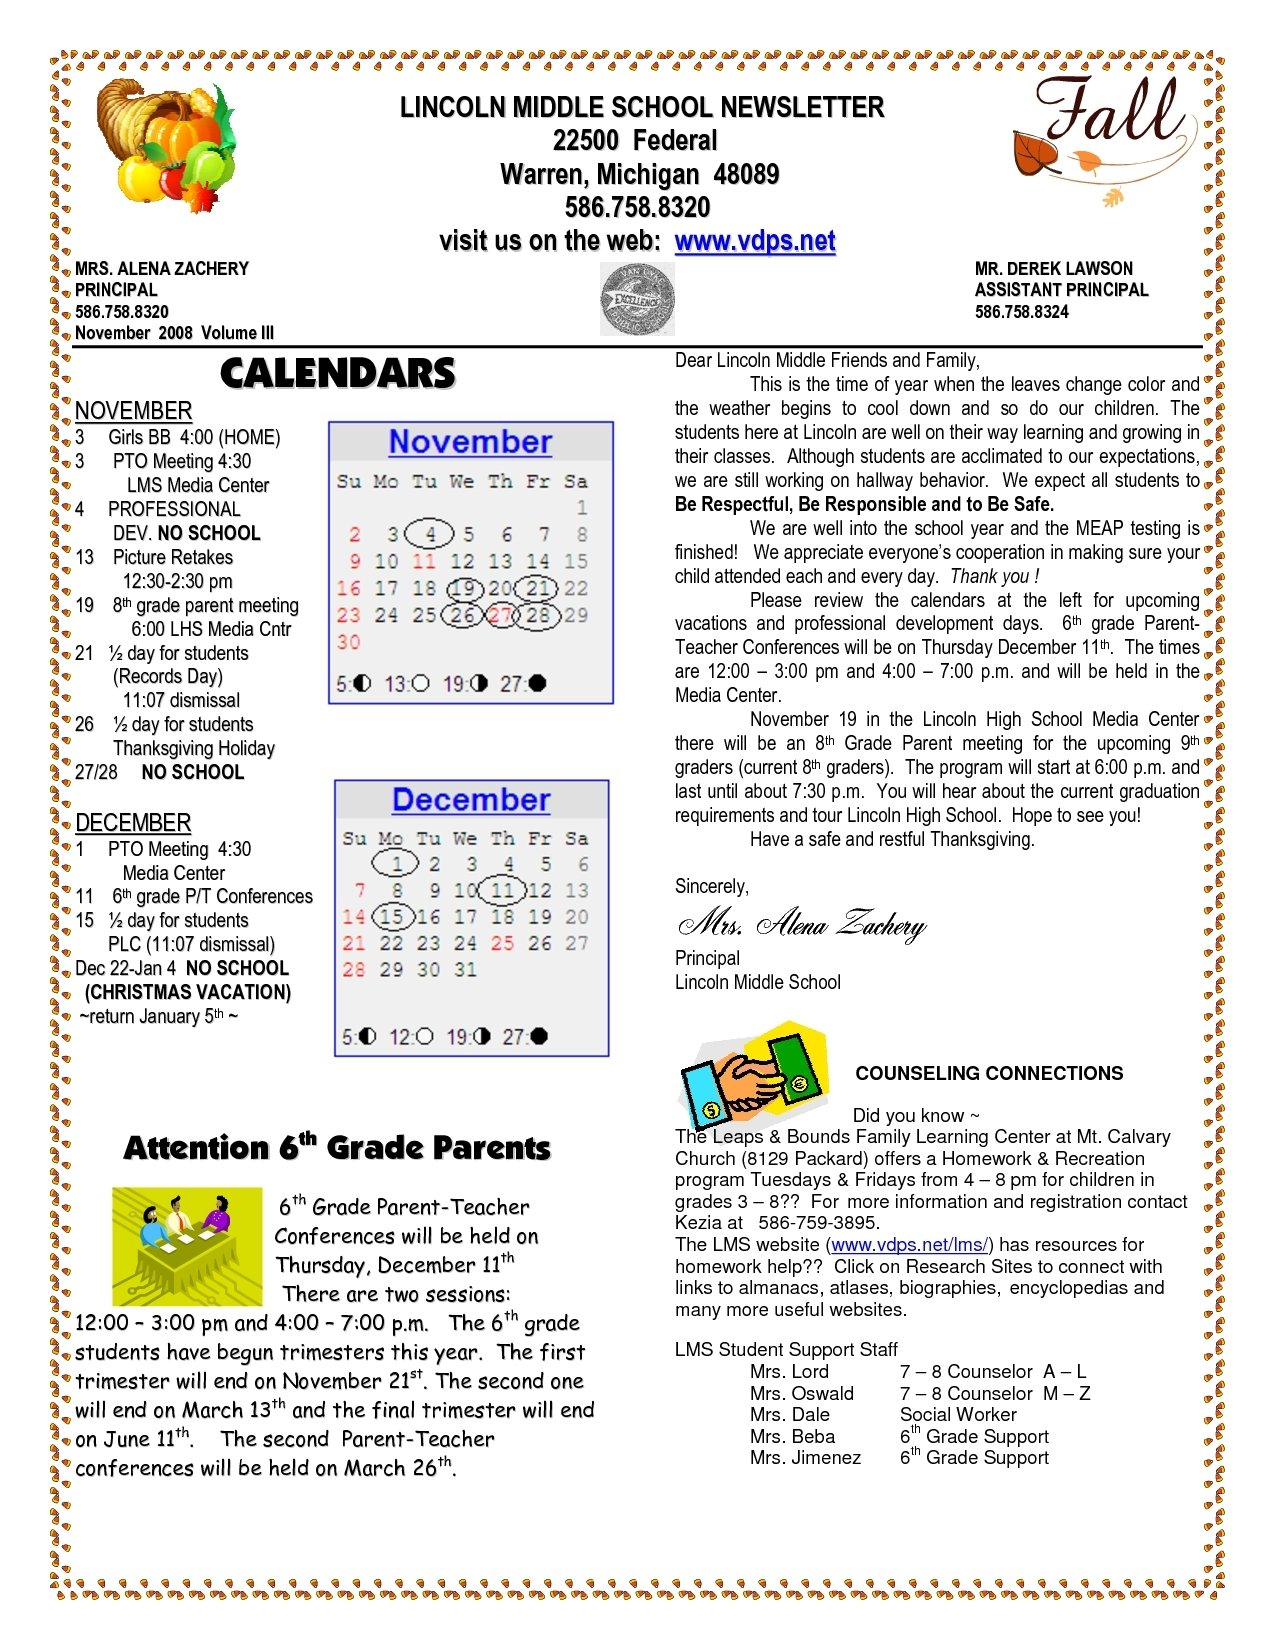 10 Nice High School Newspaper Article Ideas school newsletter templates lincoln middle school newsletter 1